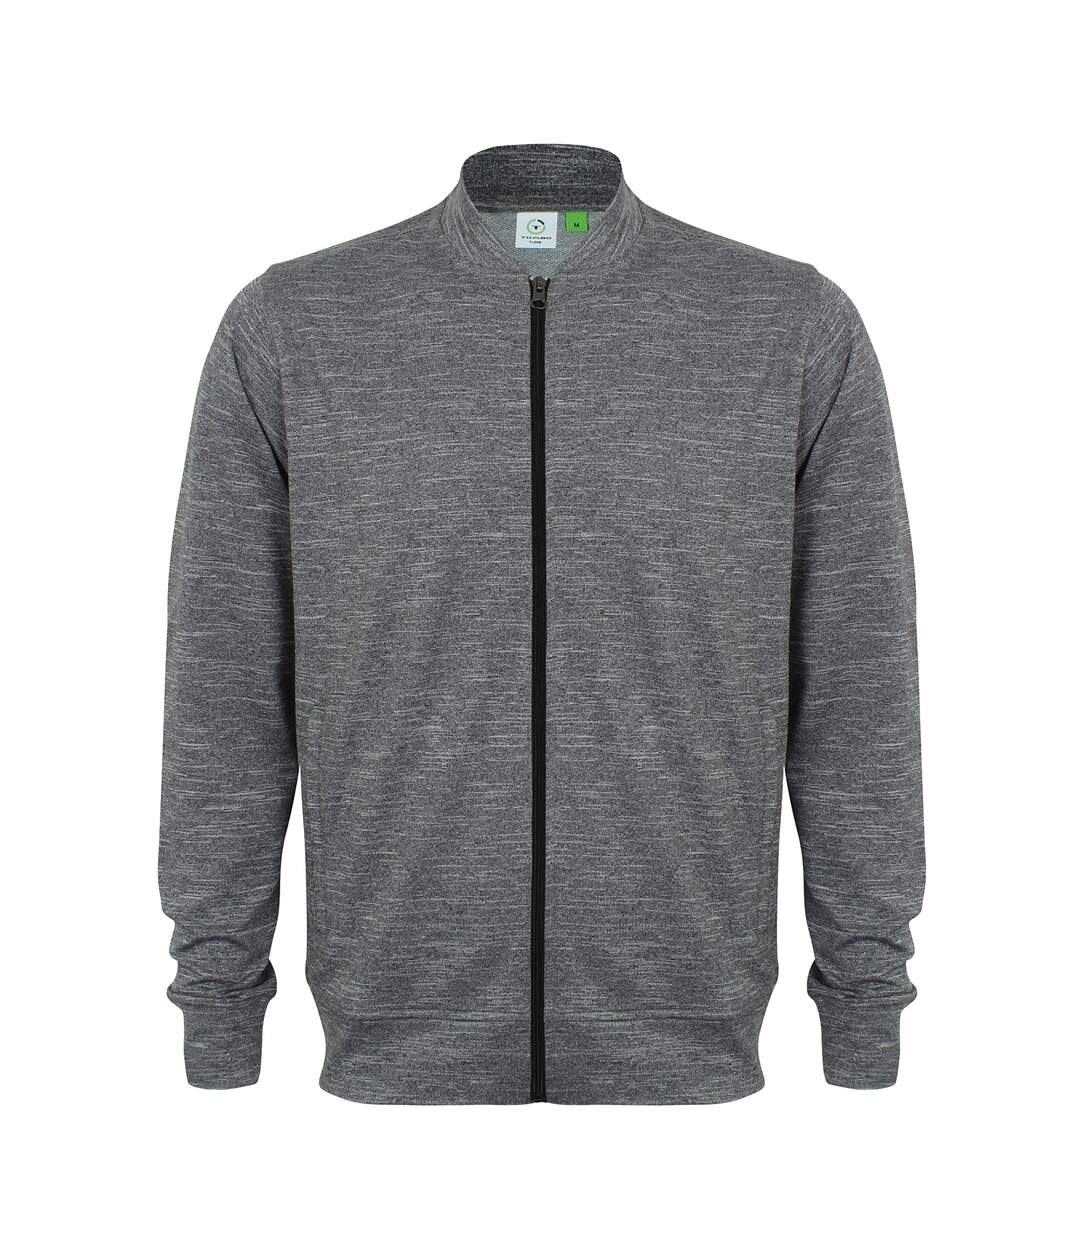 Tombo Mens Full Zip Track Top (Grey Marl) - UTRW5468